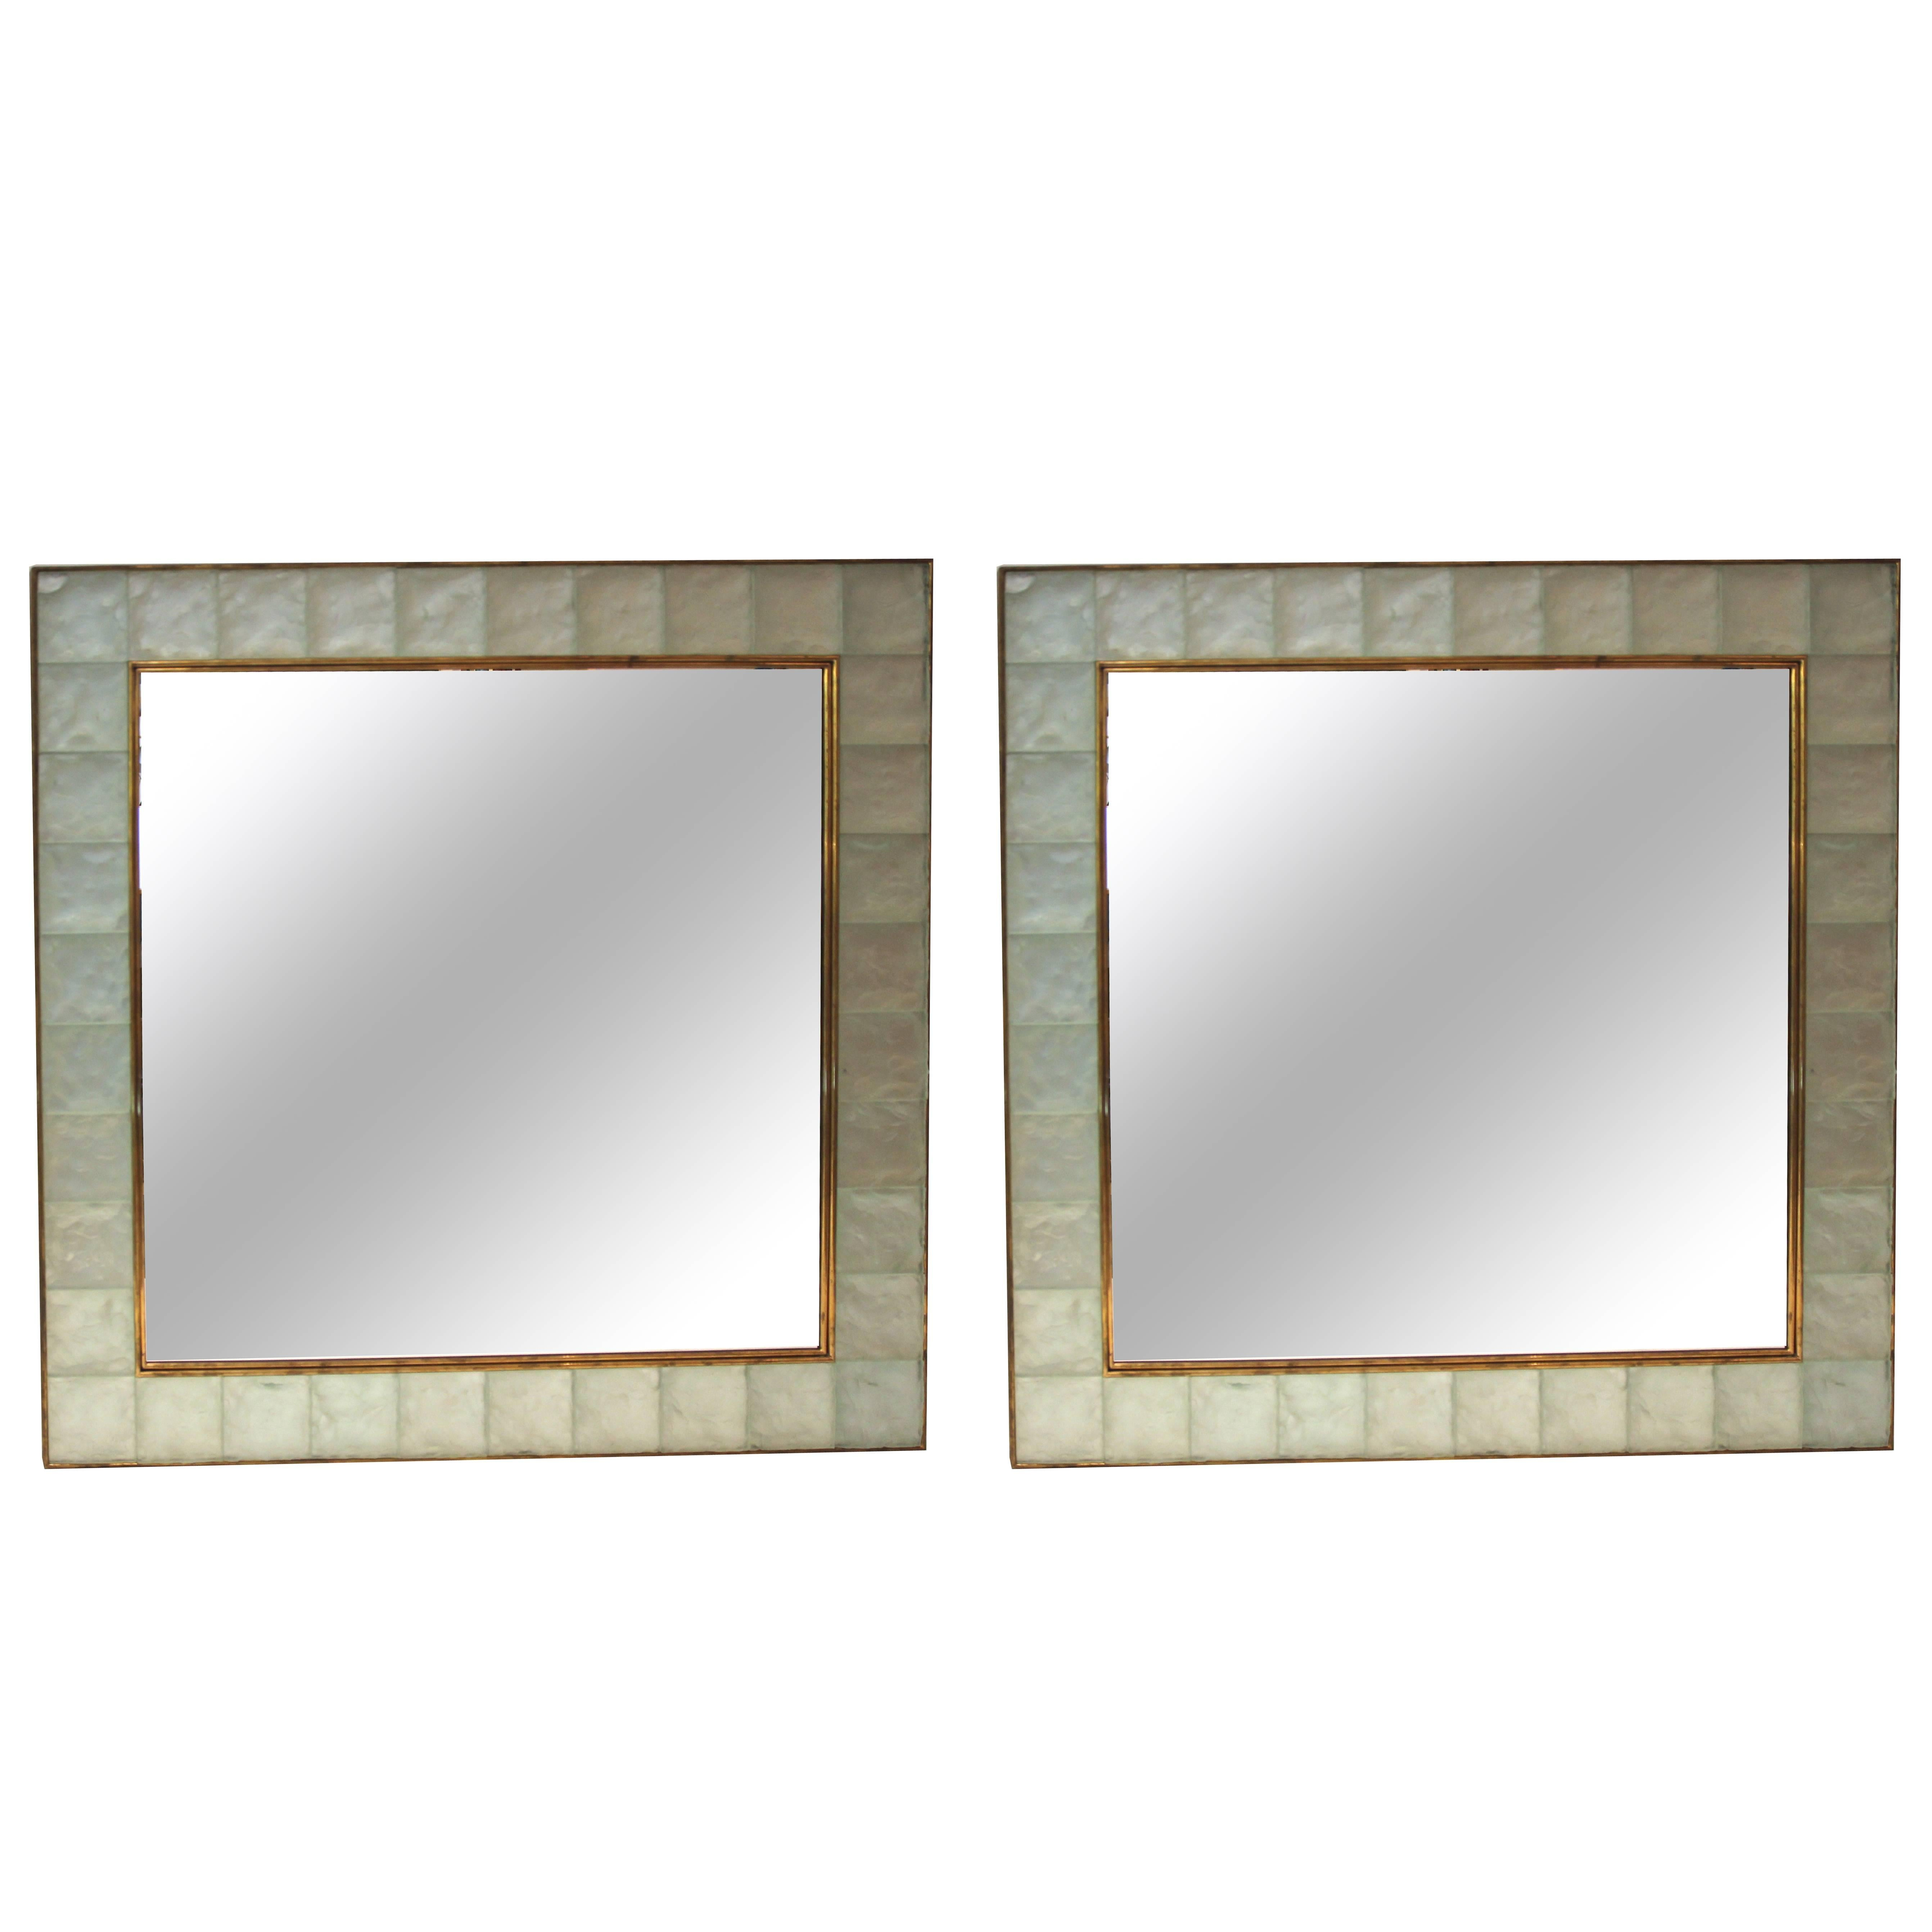 "Ghiró Pair of ""Pastis"" Wall Mirrors, Gold Brass and Crystal Glass, circa 2000"